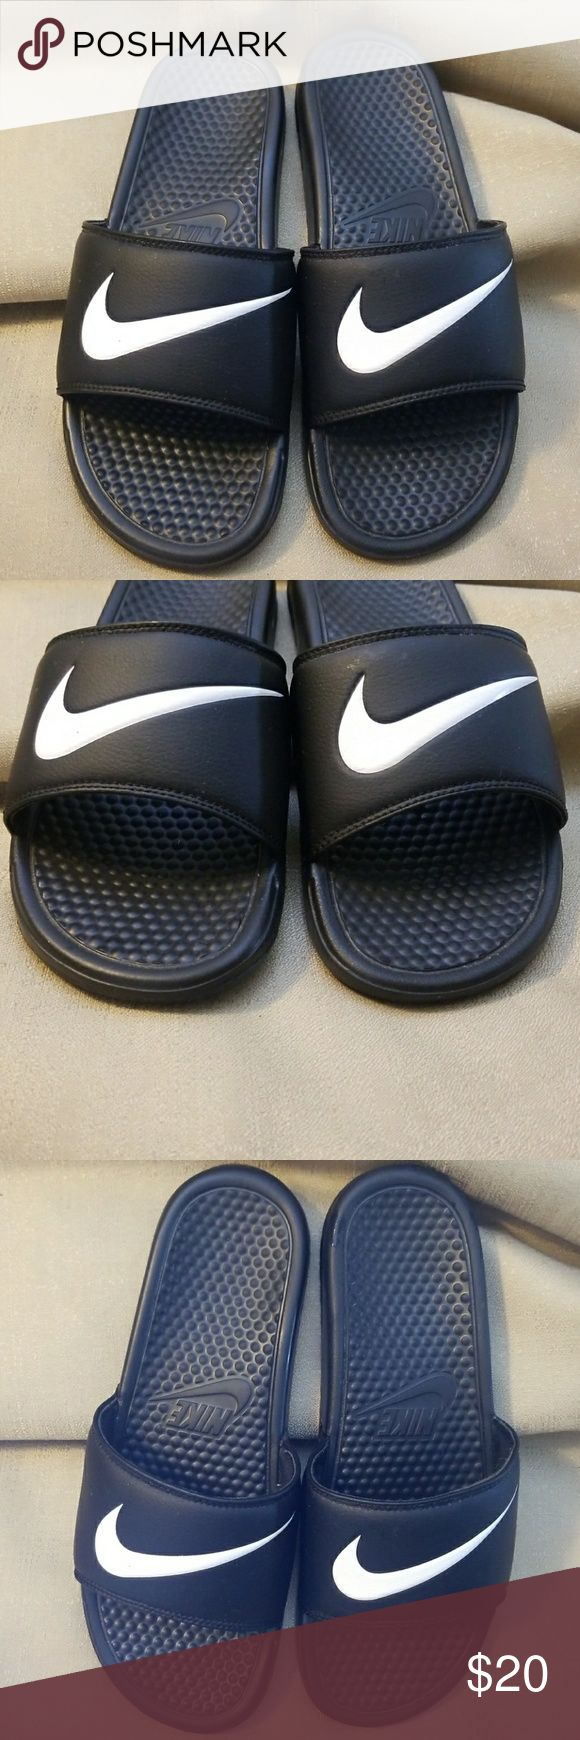 Nike men's slip on black sandals open toe size 10 Very good used condition size 10 Nike black slip on sports sandals. Minimal wear. Has the circular raised inner sole for foot comfort. Nike Shoes Sandals & Flip-Flops